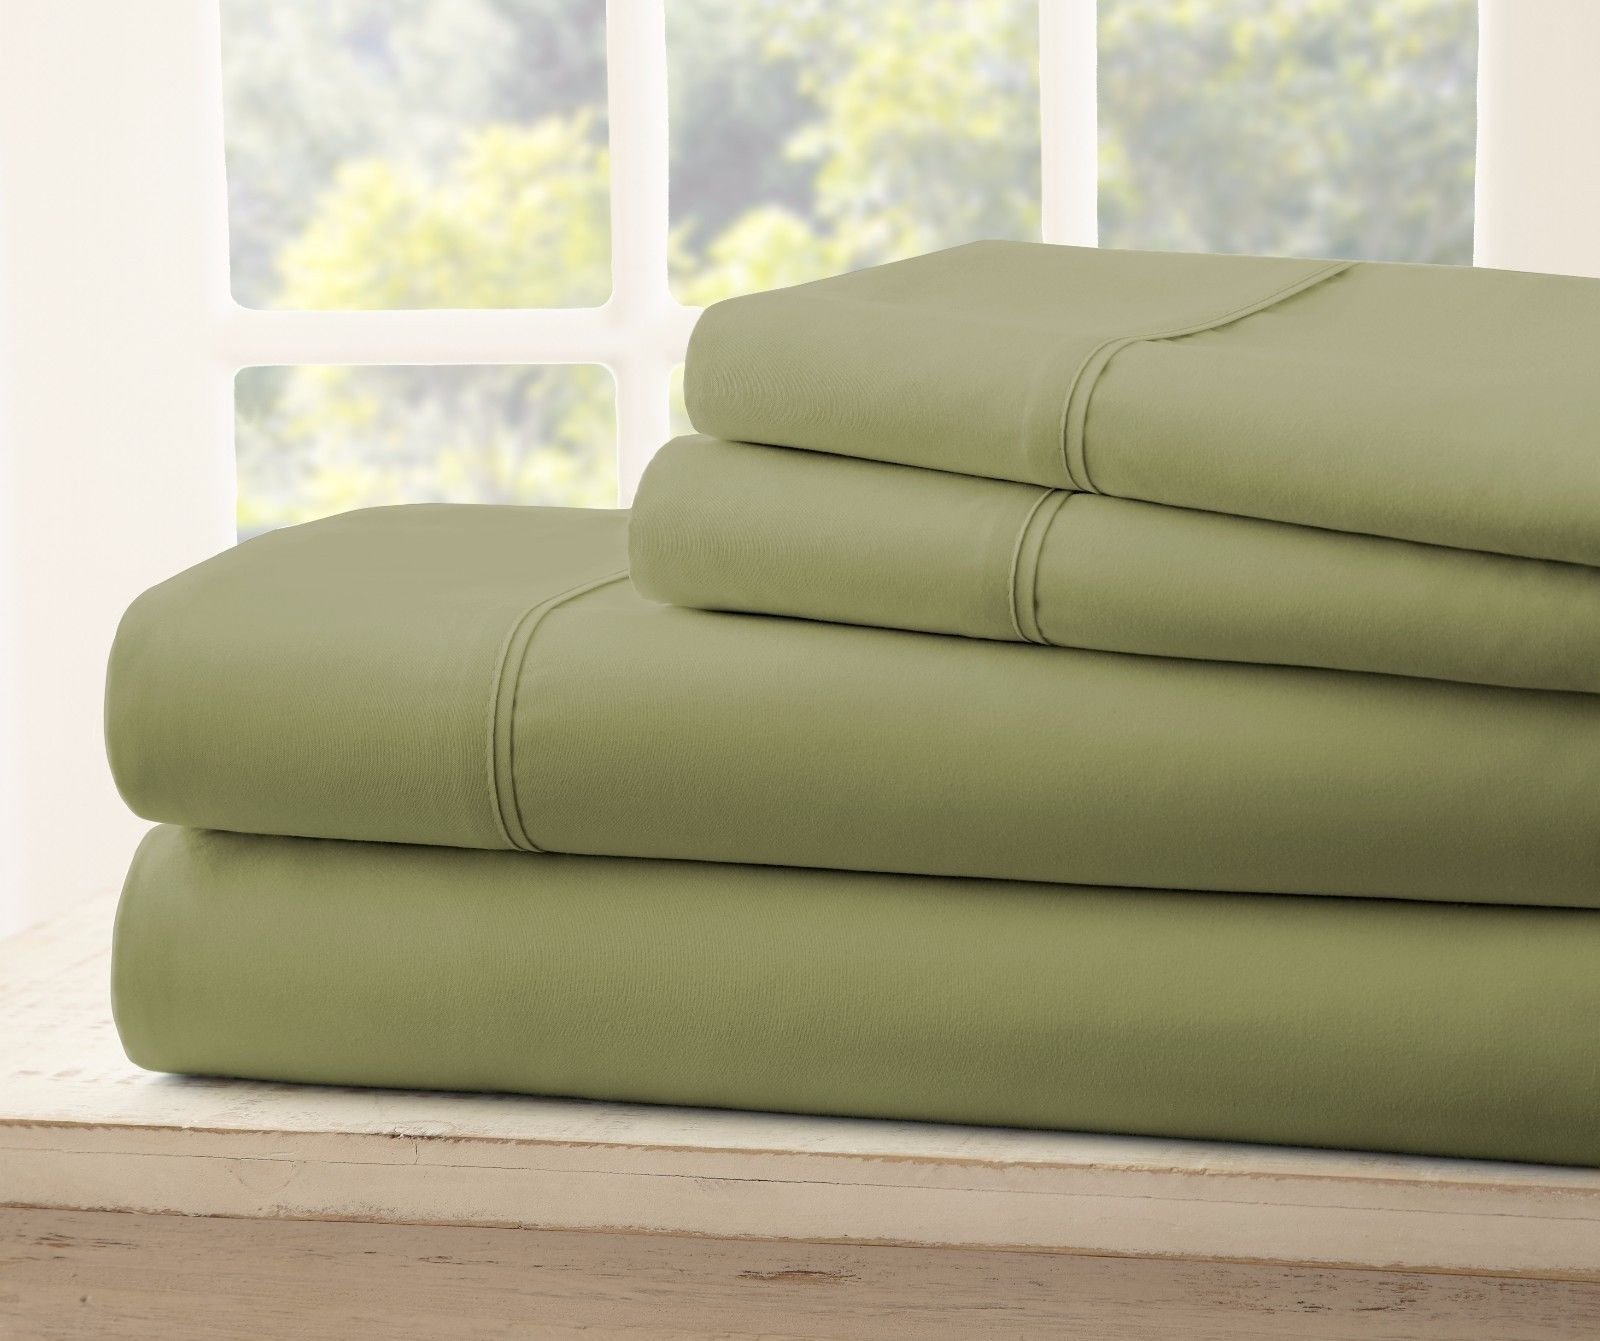 Royal Collection 1900 Split Queen Sheets Egyptian Cotton - Bamboo Quality Bed Sheet Set with 2-30''X 80'' Fitted, 1 Flat and 2 STD P/Cases. Wrinkle Free Shrinkage Free (Split Queen, Sage Green)